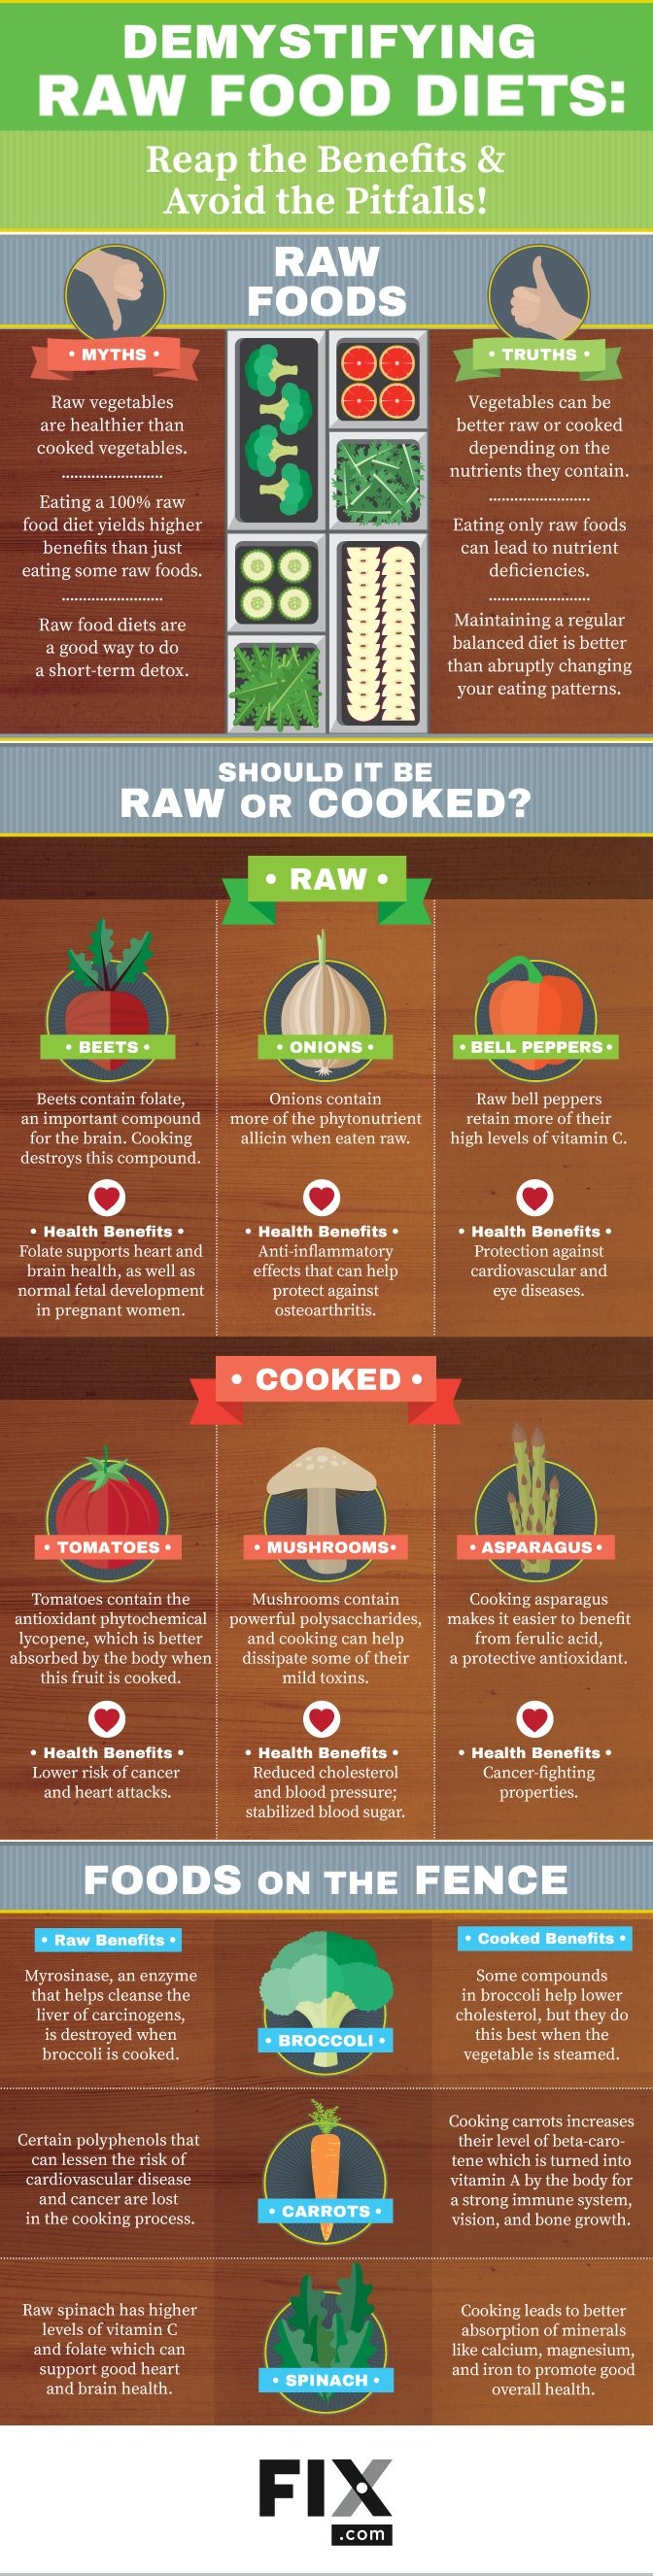 Learn about which foods are healthier raw and which provide more nutrients when cooked with this guide to raw food diets that will help you reap the benefits and avoid the pitfalls of raw food diets. #raw #cleaneating #cleanliving